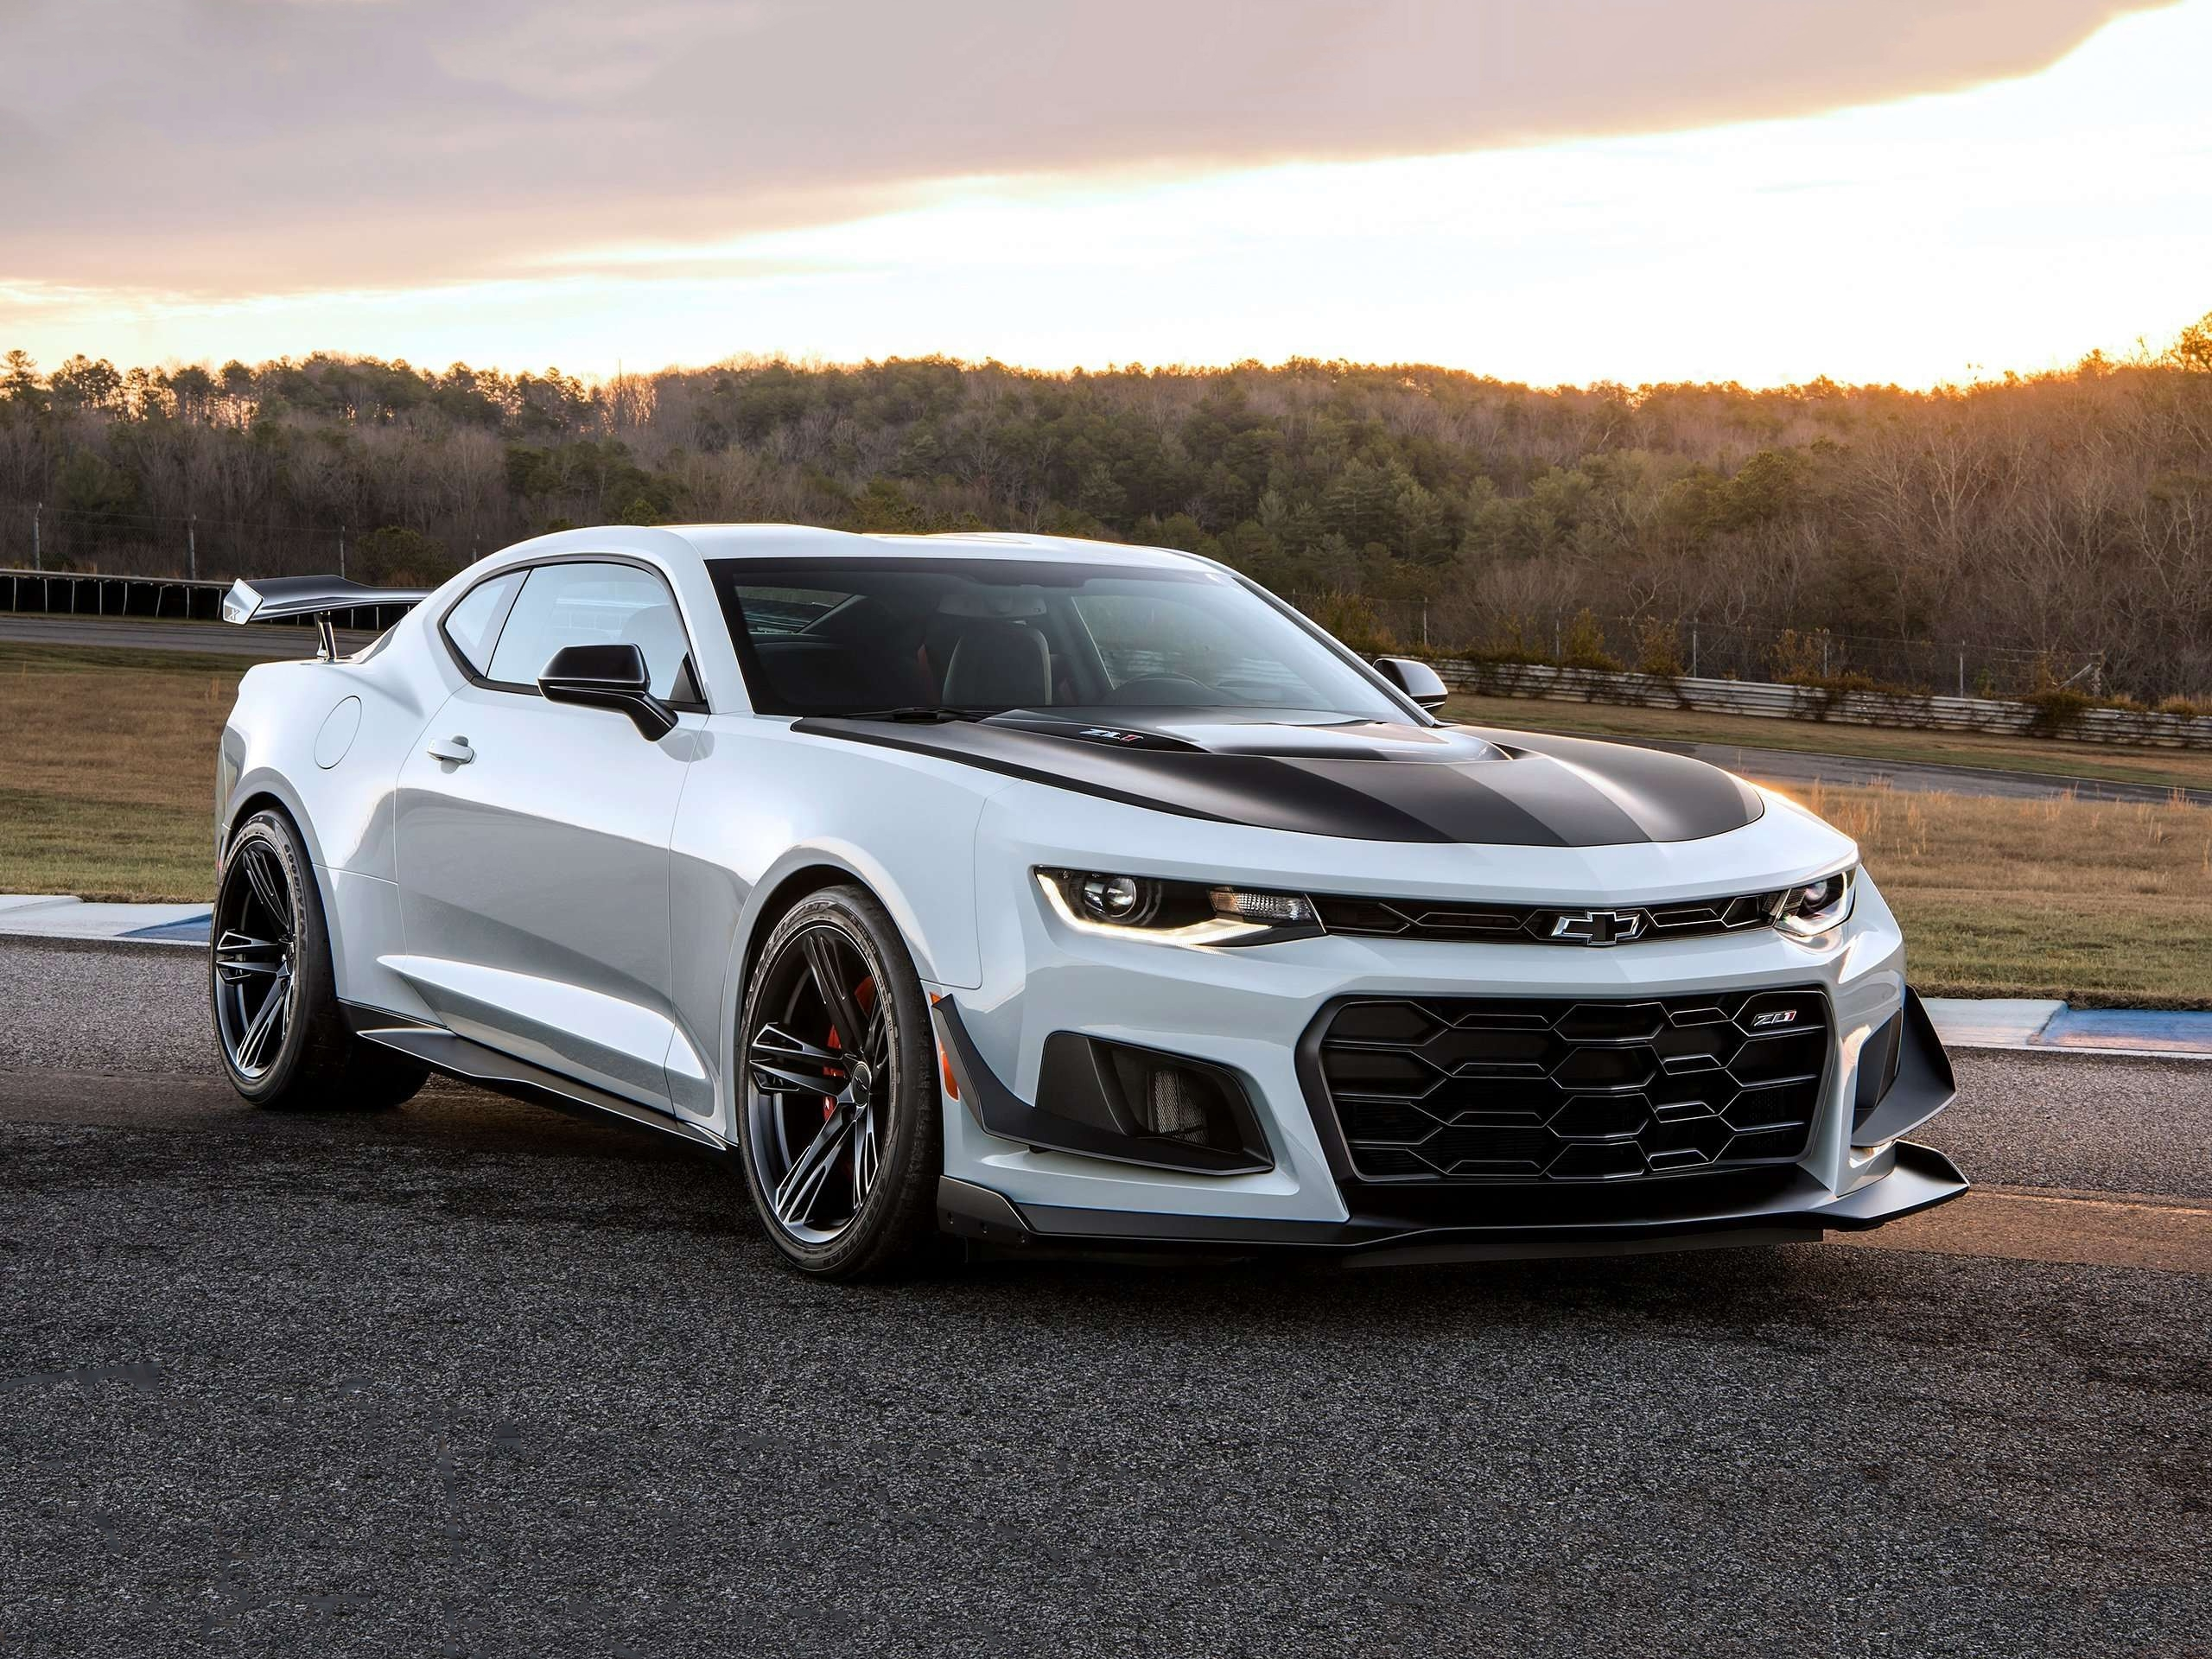 2018 chevrolet camaro zl1 1le, hd cars, 4k wallpapers, images